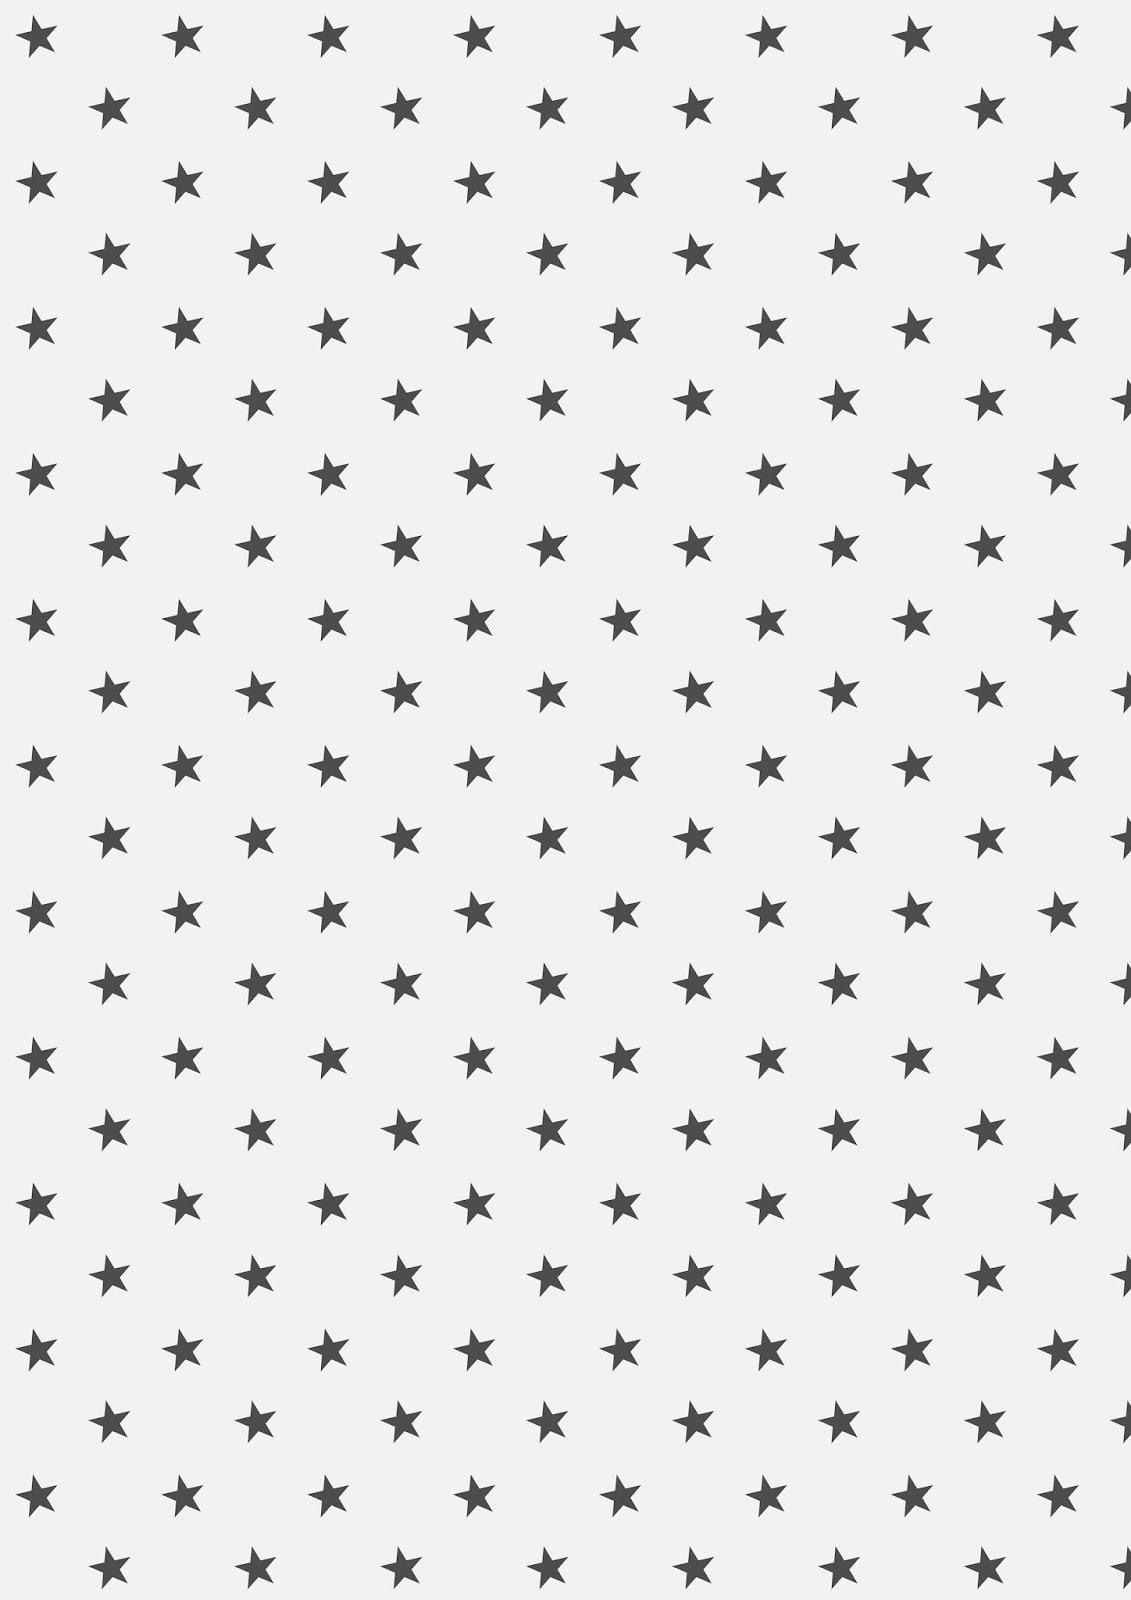 It is a picture of Printable Stars with pattern